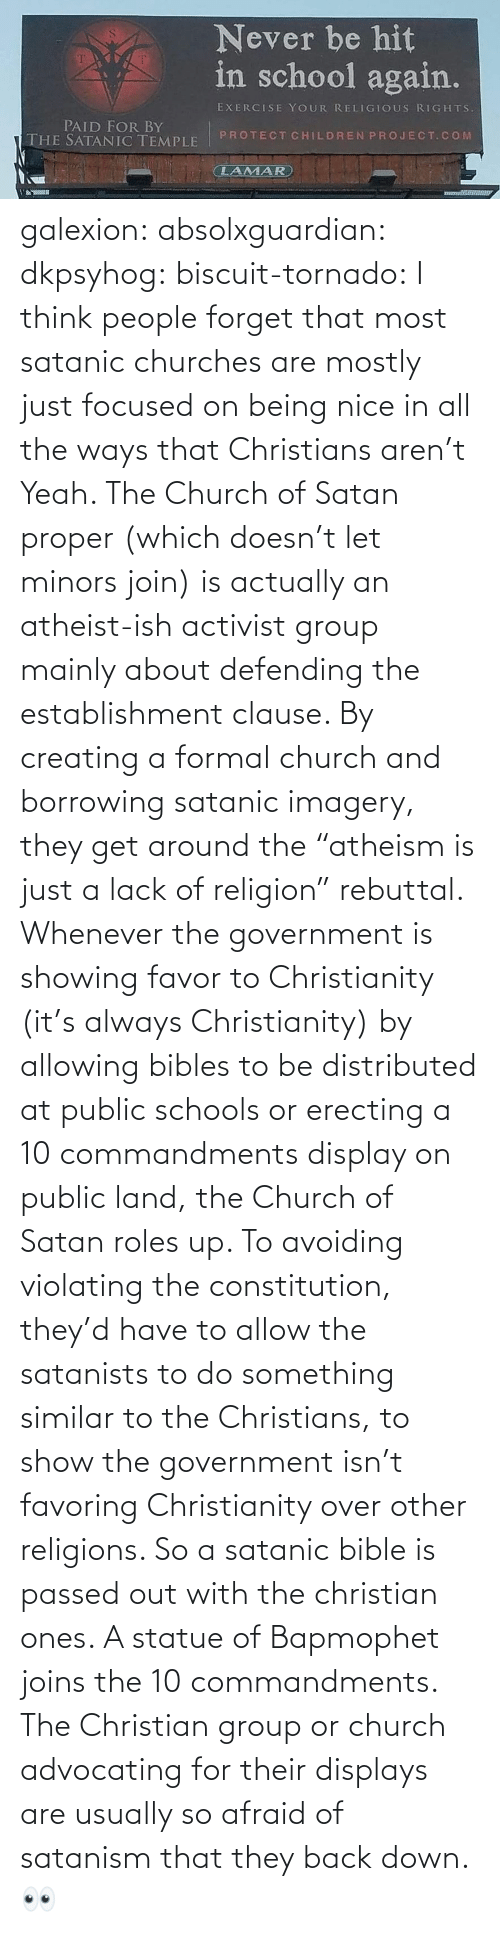 "do something: galexion:  absolxguardian:  dkpsyhog:  biscuit-tornado:     I think people forget that most satanic churches are mostly just focused on being nice in all the ways that Christians aren't  Yeah. The Church of Satan proper (which doesn't let minors join) is actually an atheist-ish activist group mainly about defending the establishment clause. By creating a formal church and borrowing satanic imagery, they get around the ""atheism is just a lack of religion"" rebuttal. Whenever the government is showing favor to Christianity (it's always Christianity) by allowing bibles to be distributed at public schools or erecting a 10 commandments display on public land, the Church of Satan roles up. To avoiding violating the constitution, they'd have to allow the satanists to do something similar to the Christians, to show the government isn't favoring Christianity over other religions. So a satanic bible is passed out with the christian ones. A statue of Bapmophet joins the 10 commandments. The Christian group or church advocating for their displays are usually so afraid of satanism that they back down.   👀"